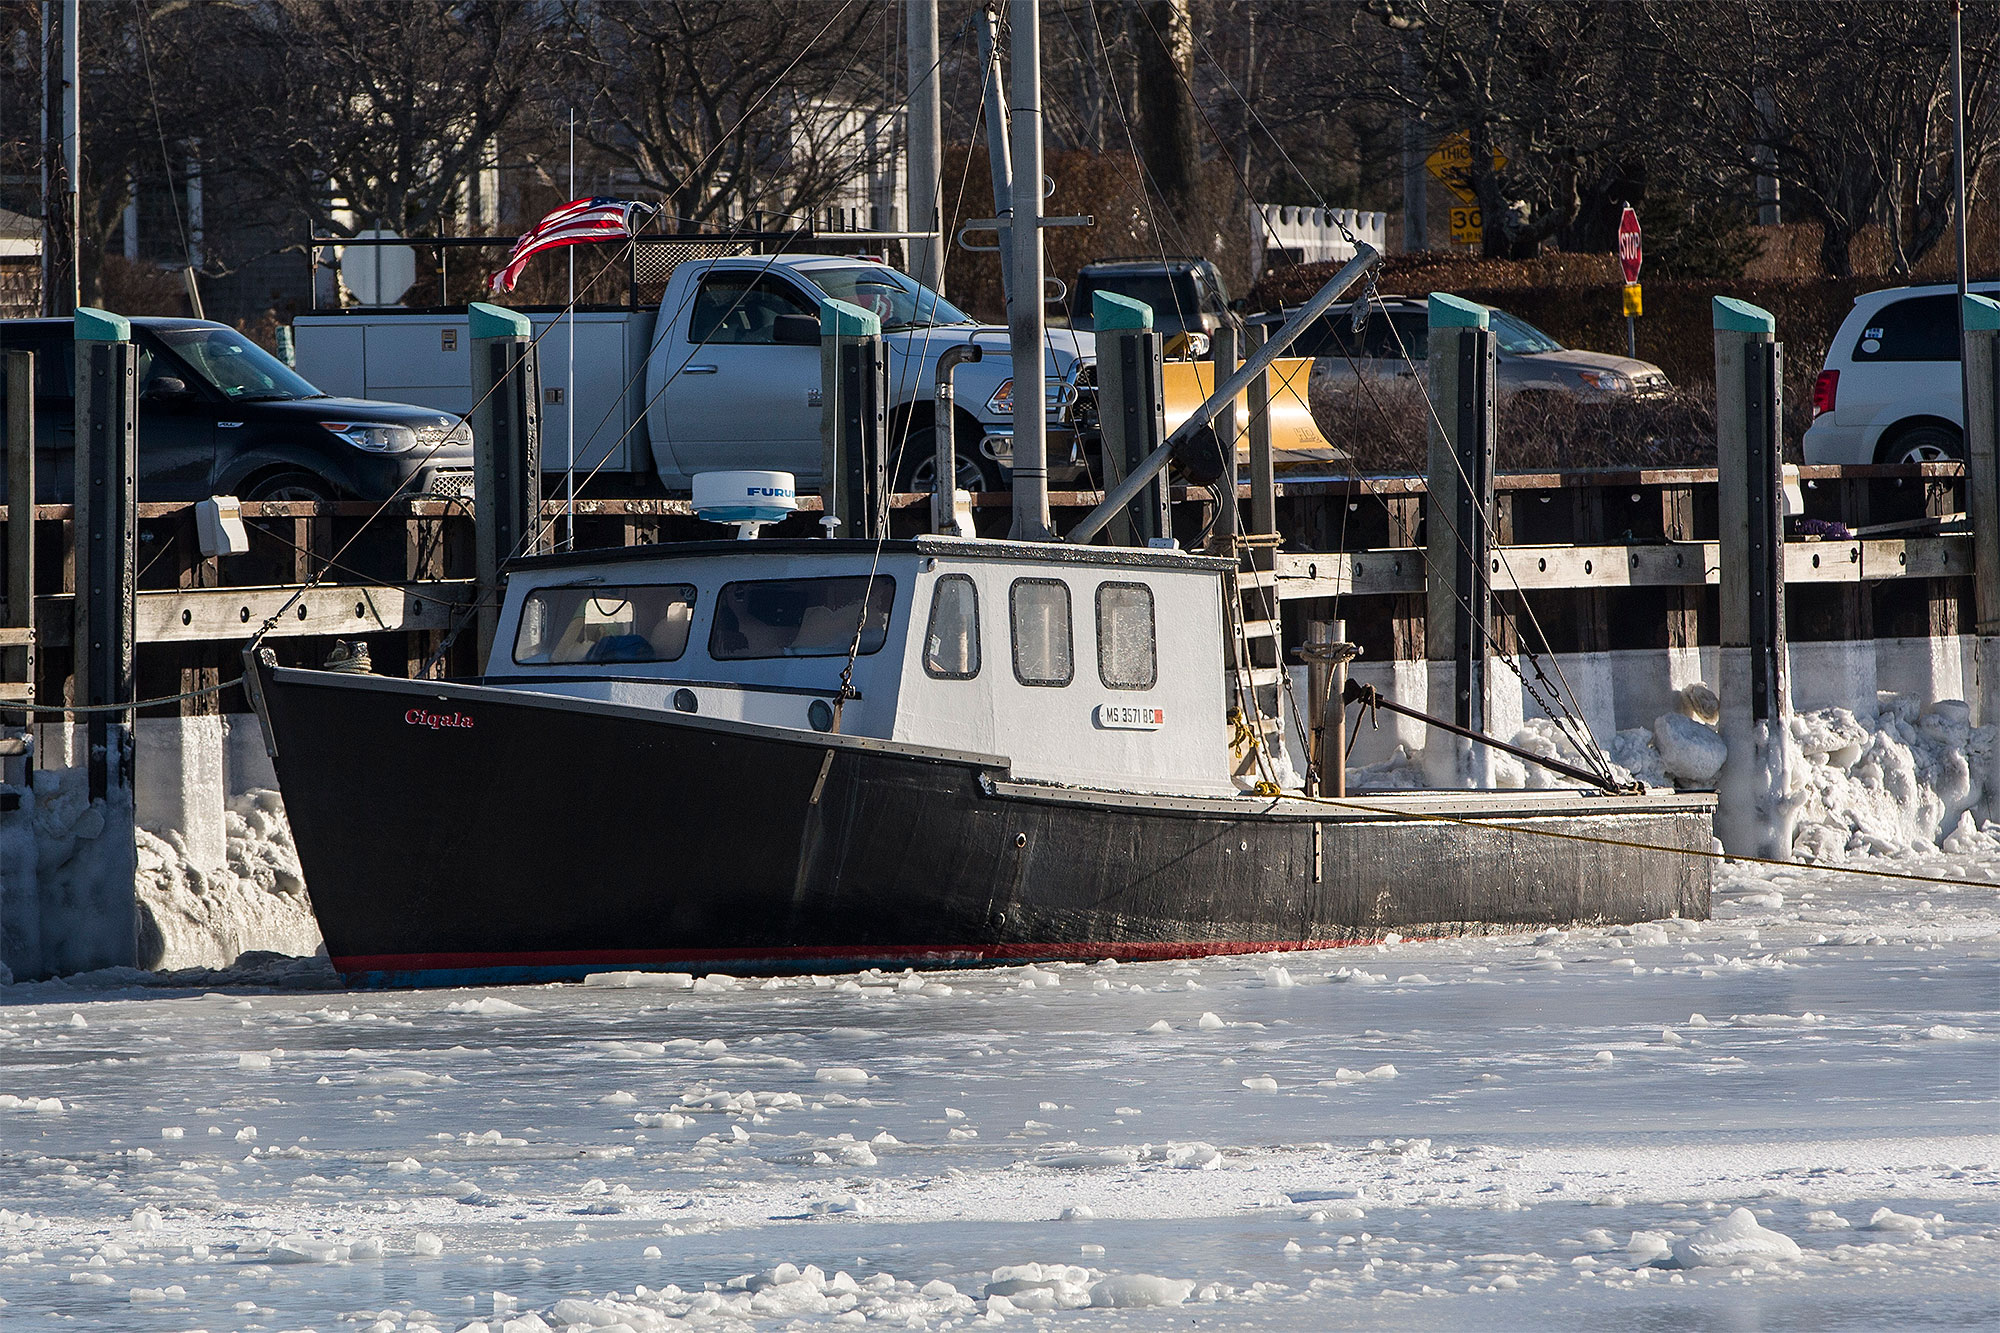 East Coast Prepares For Large Winter Nor'easter Storm Bringing Frigid Temperatures, High Winds, And Snow